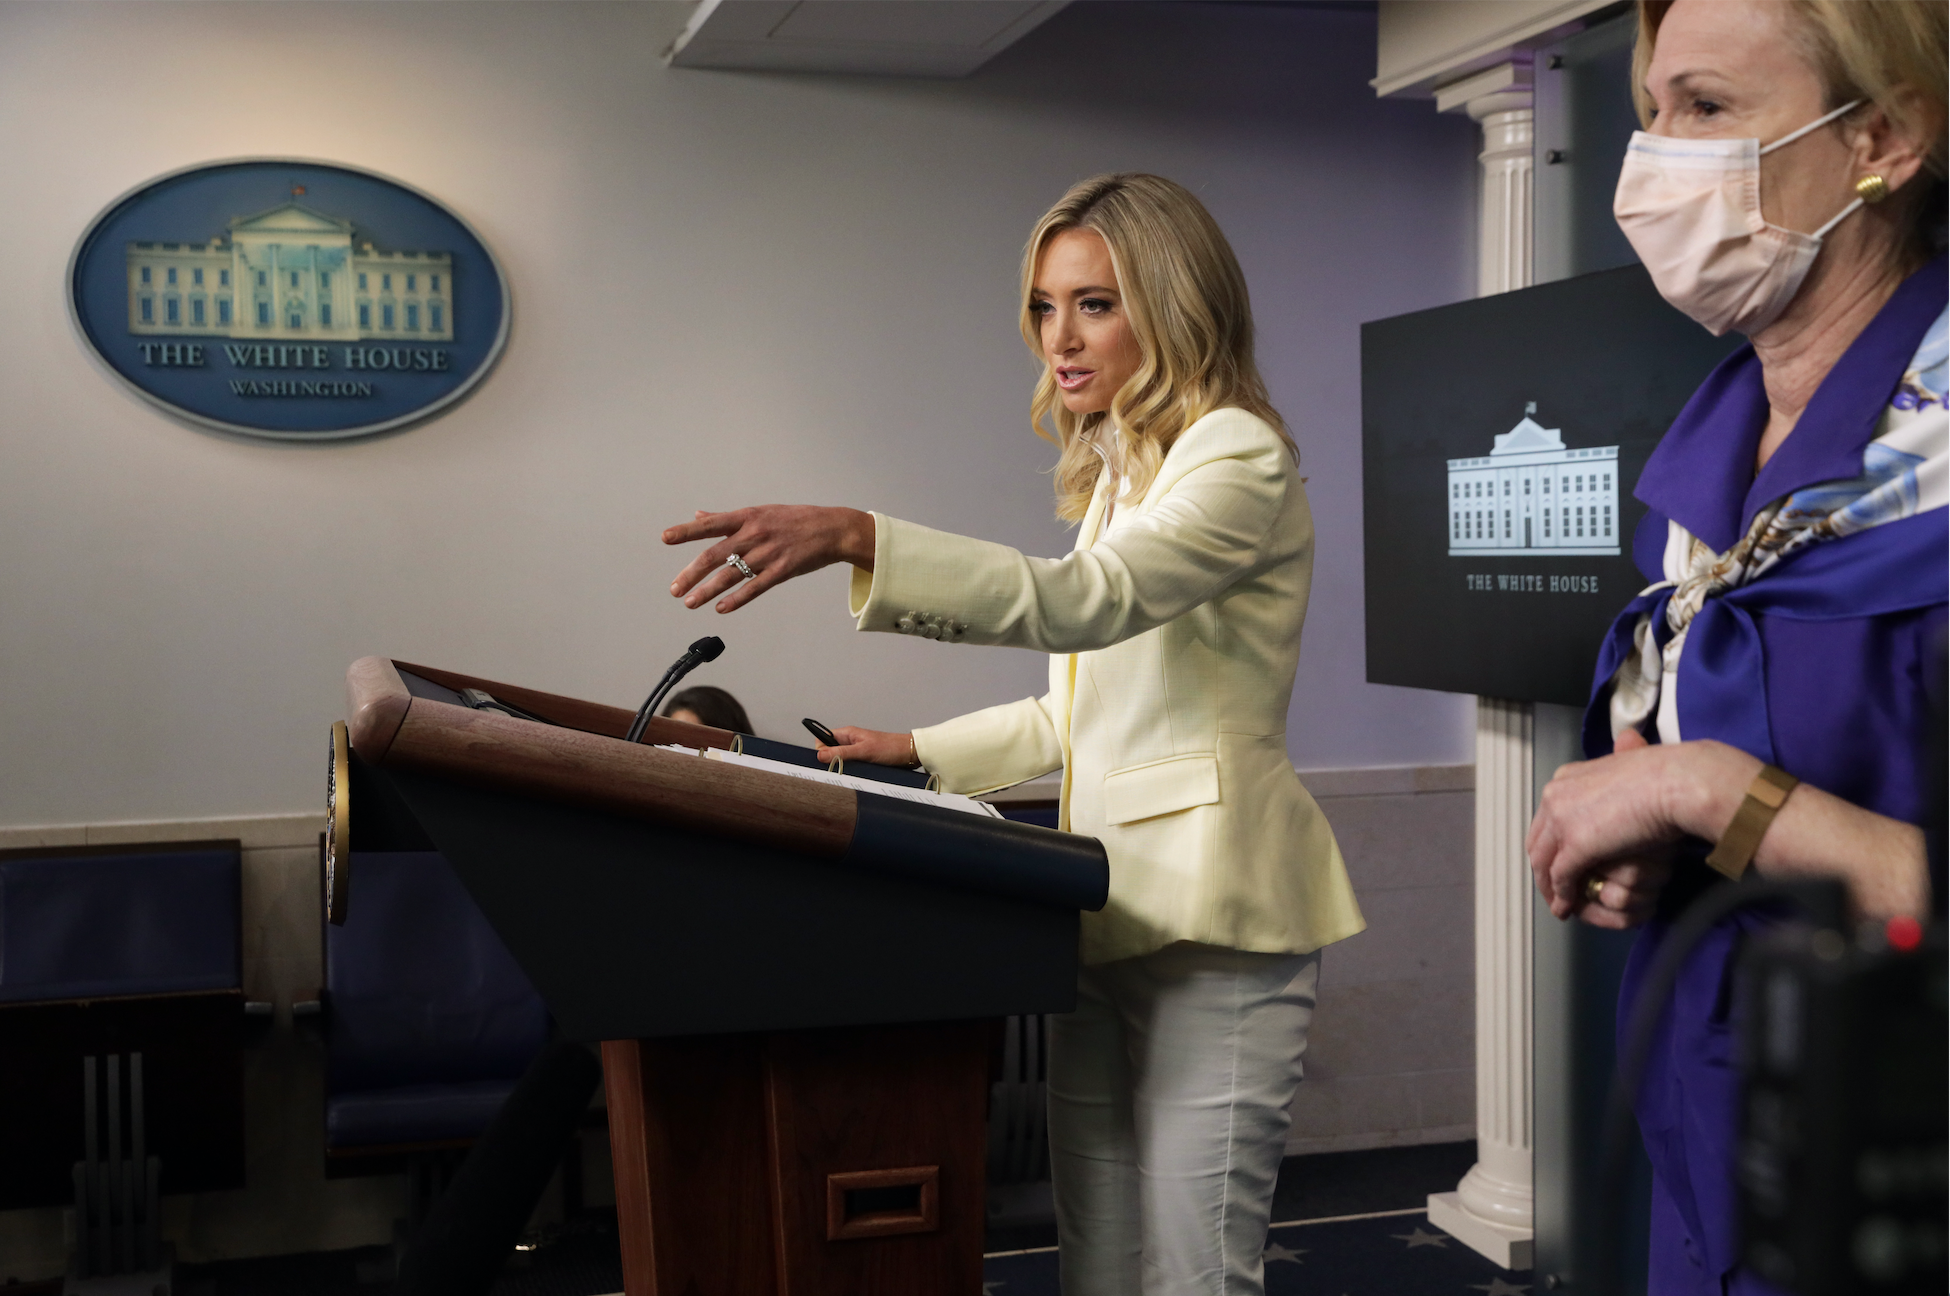 Kayleigh McEnany Photo by Alex Wong/Getty Images